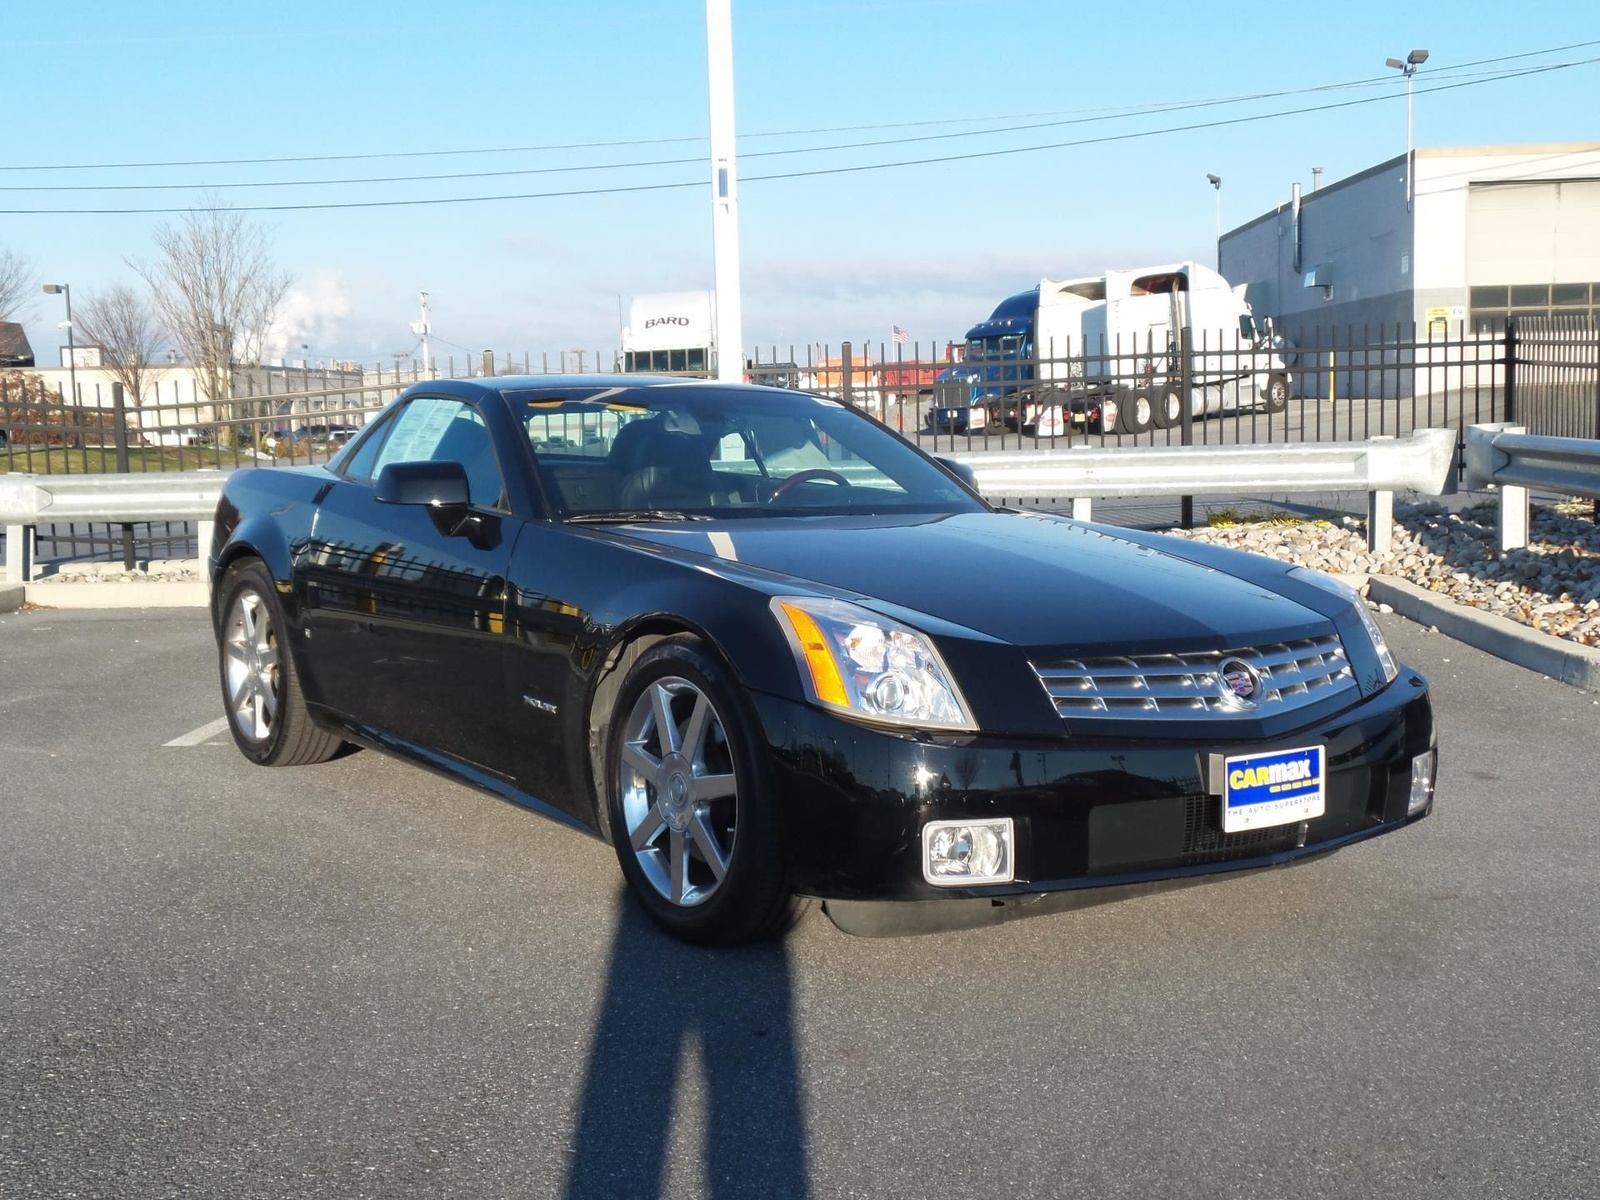 Car Max Near Me >> Cadillac Xlr V Questions Very Worried From Online Reviews